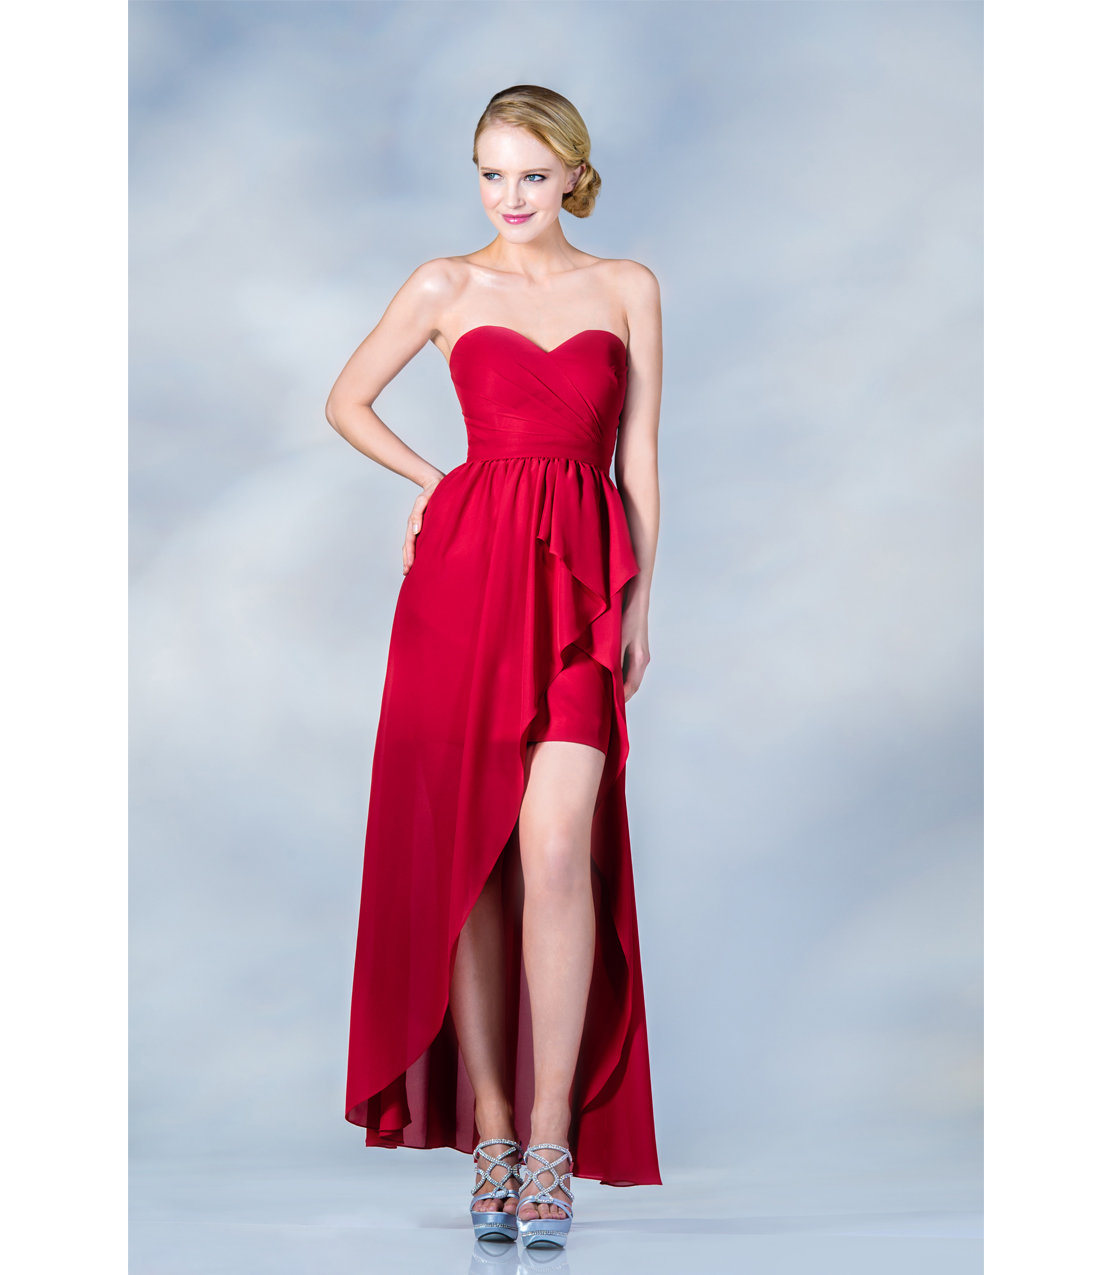 2013 Prom Dresses Red High Low Strapless From Unique Vintage